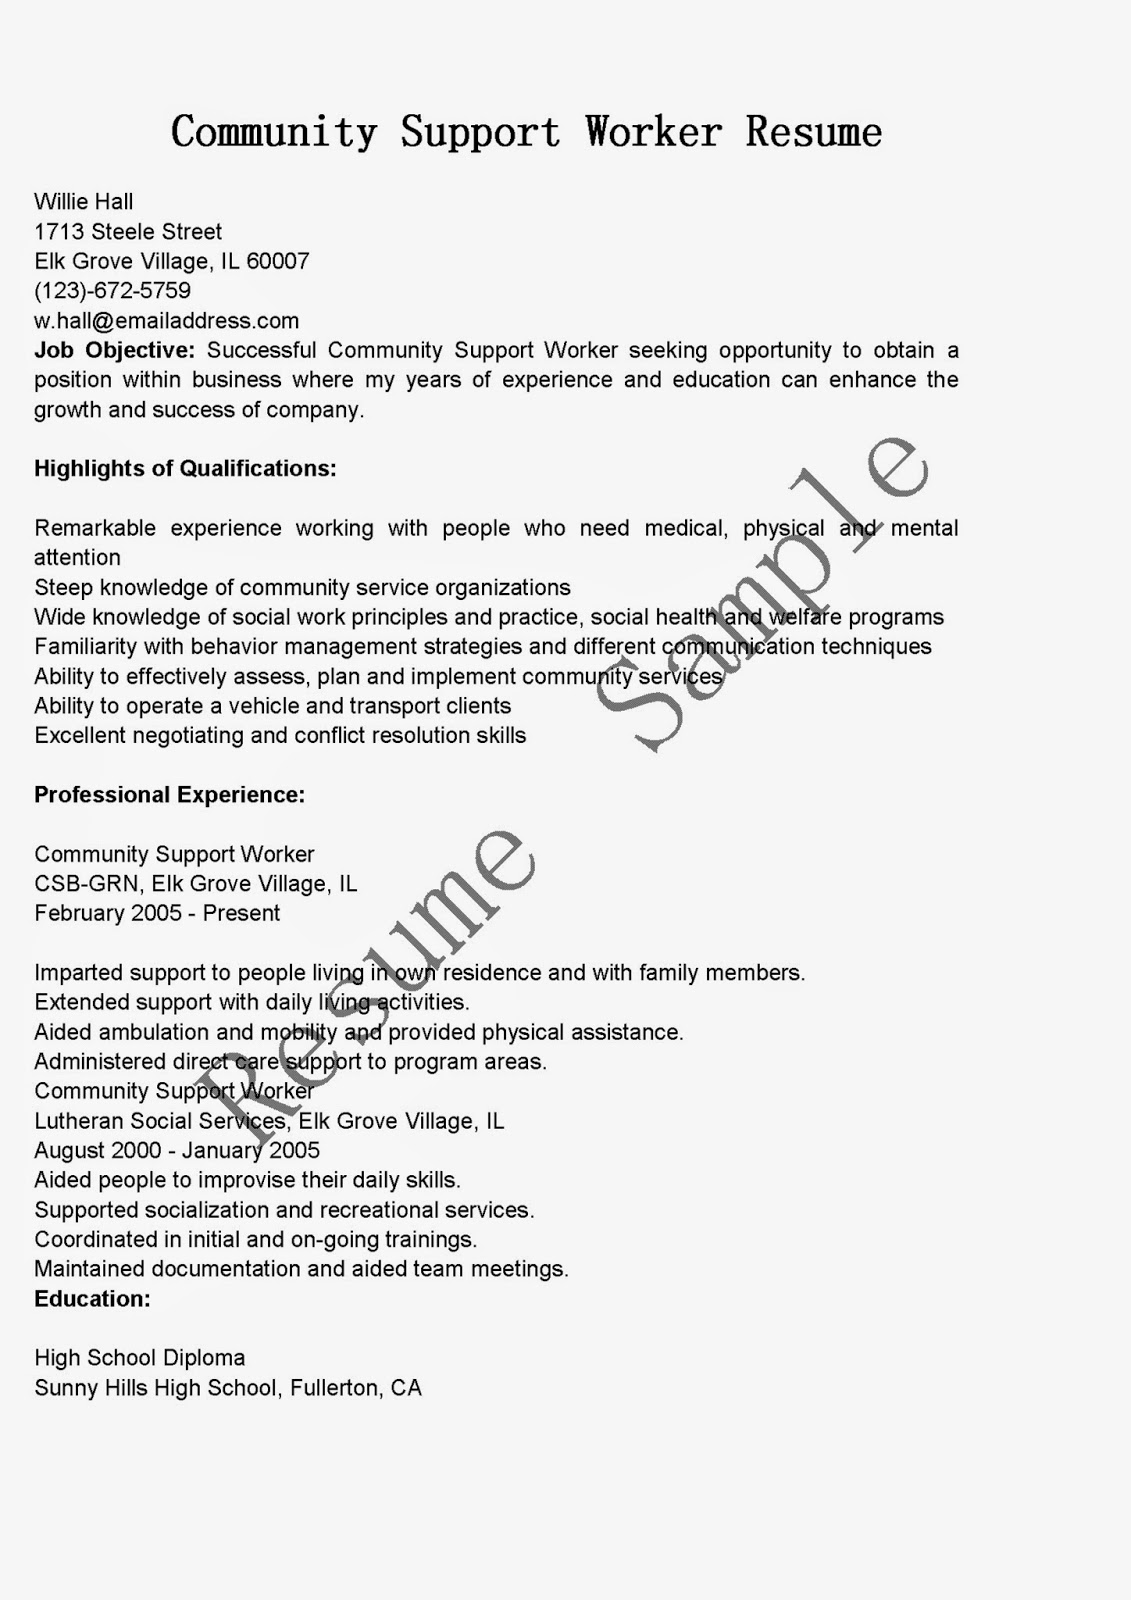 cover letter for community support worker position - resume samples community support worker resume sample